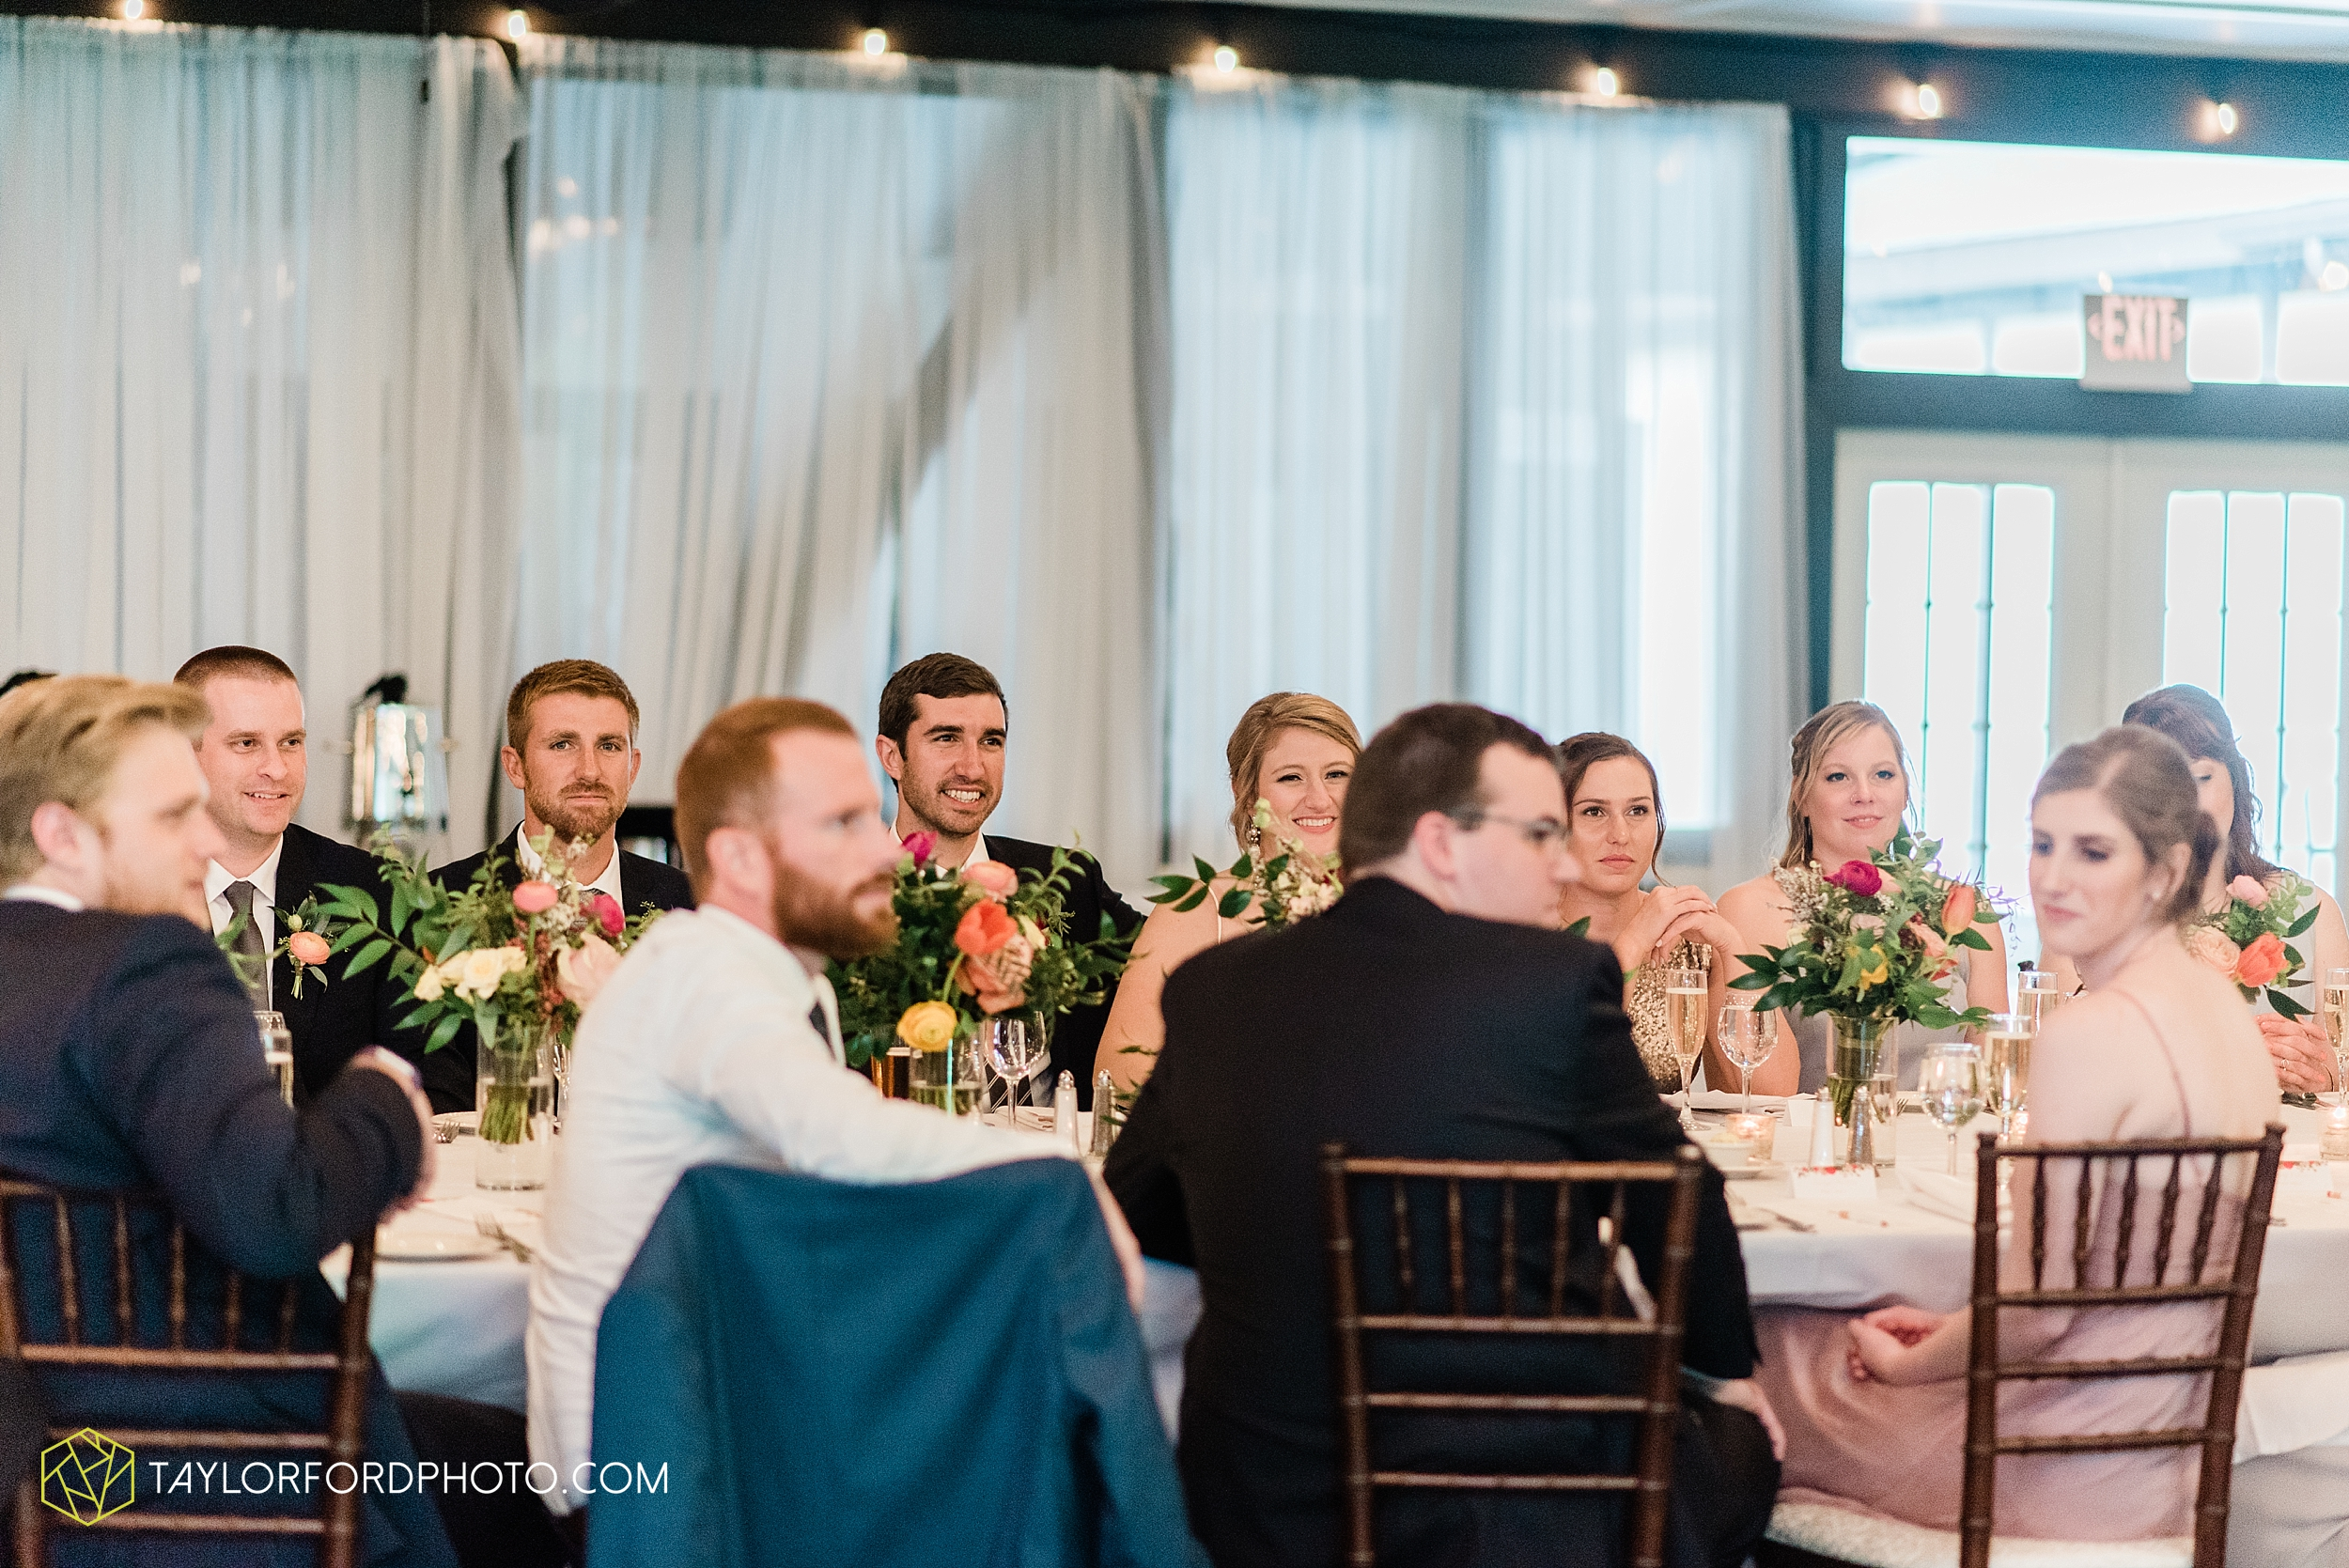 margot-may-evan-kohler-club-at-hillbrook-cleveland-chagrin-falls-outdoor-wedding-bhldn-gardenview-flowers-toledo-photographer-taylor-ford-photographer_9635.jpg